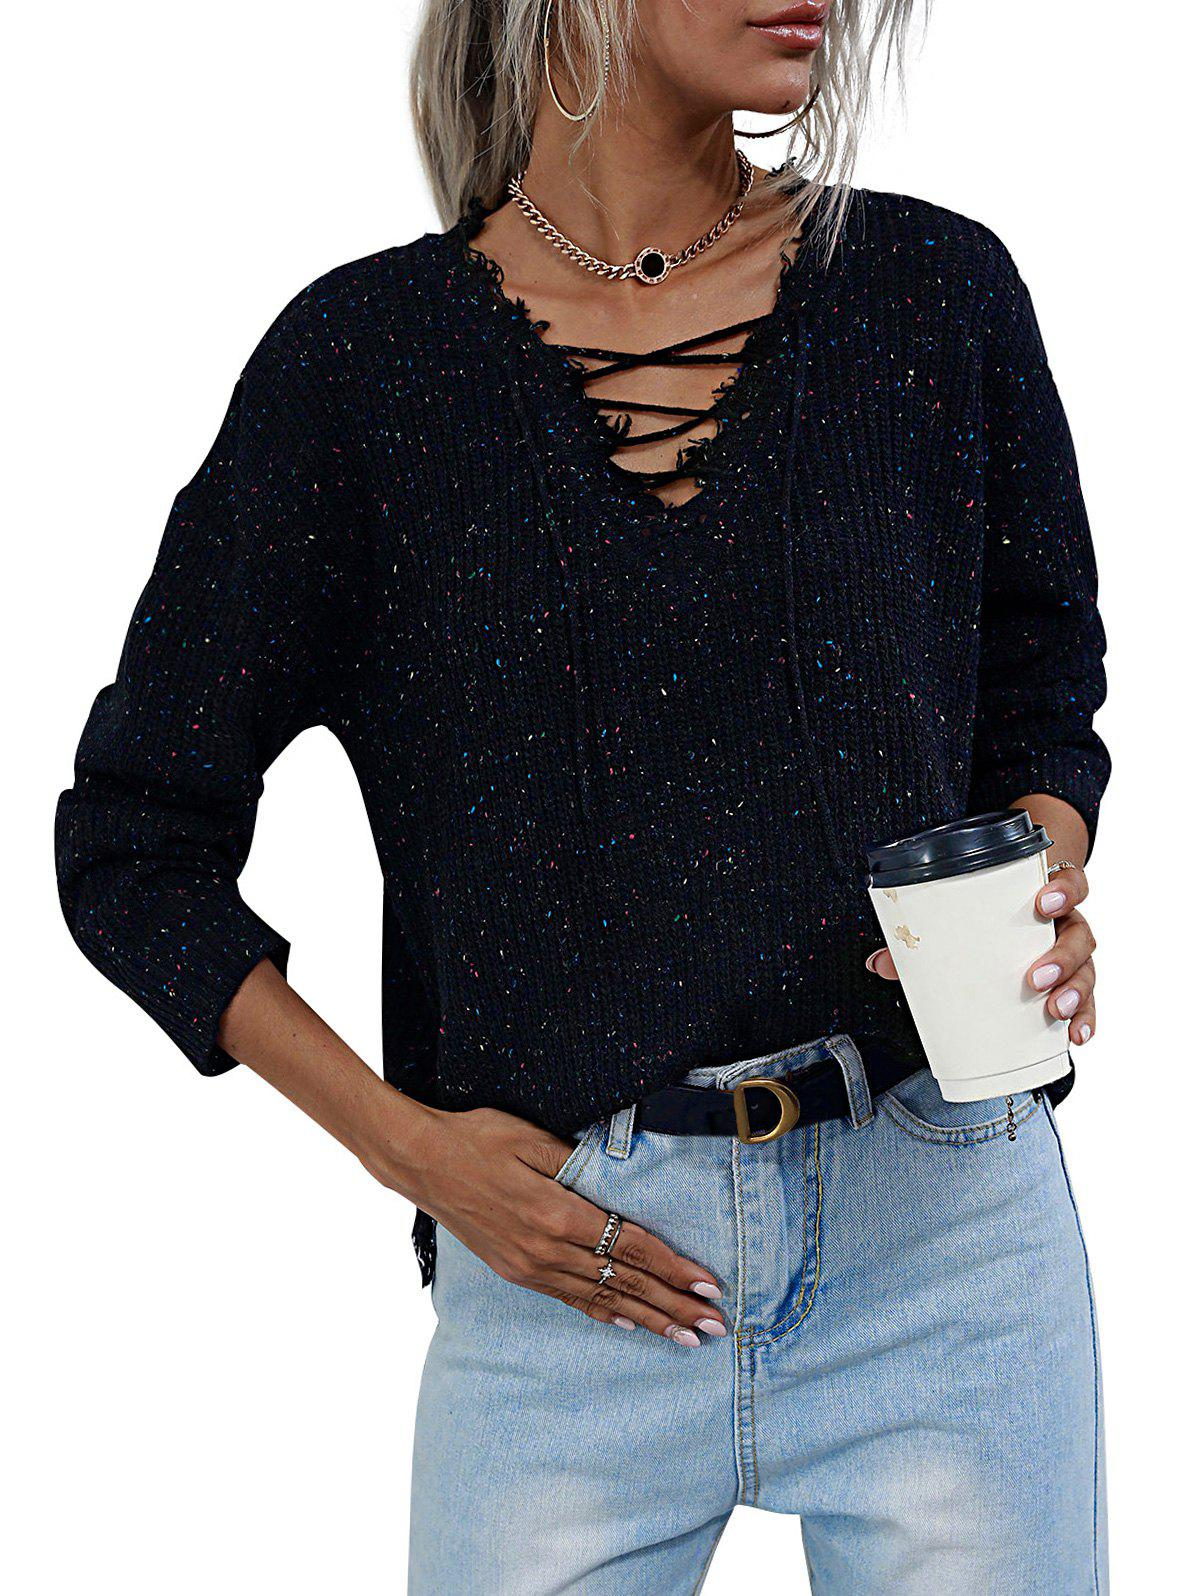 Buy V Neck Lace-up Heathered Distressed Trim Sweater